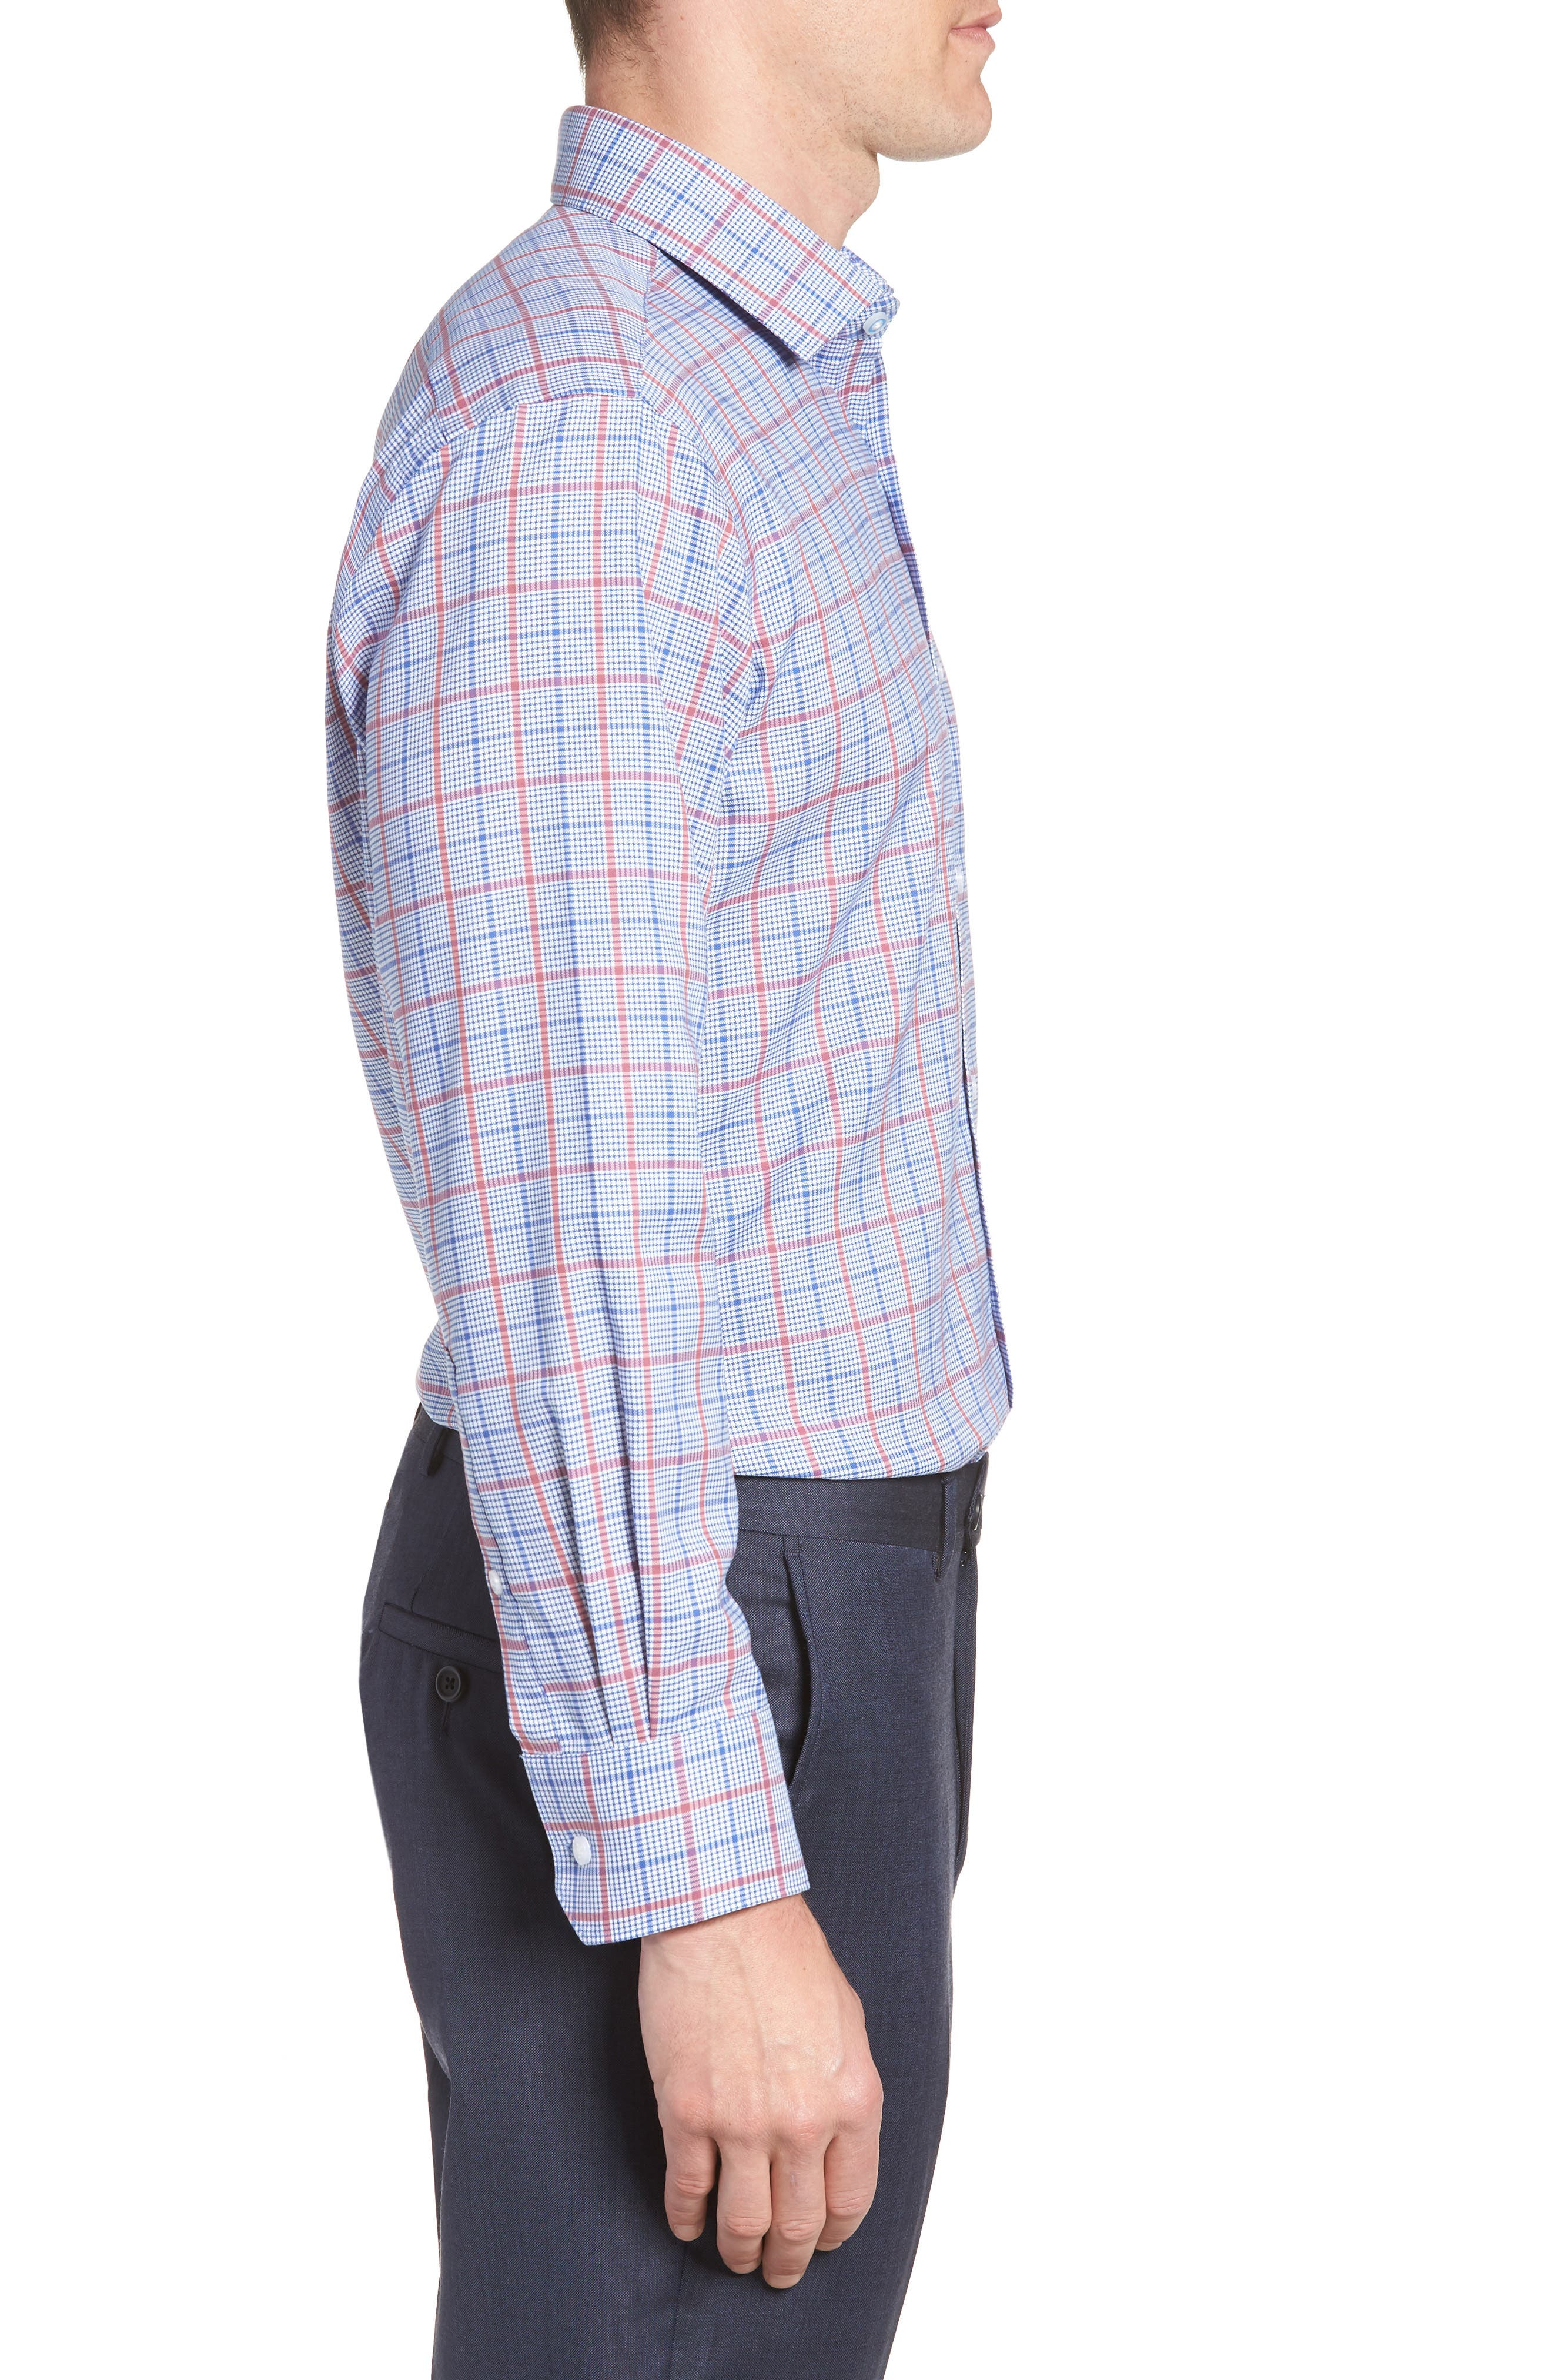 Kai Trim Fit Check Dress Shirt,                             Alternate thumbnail 4, color,                             Red/ Blue